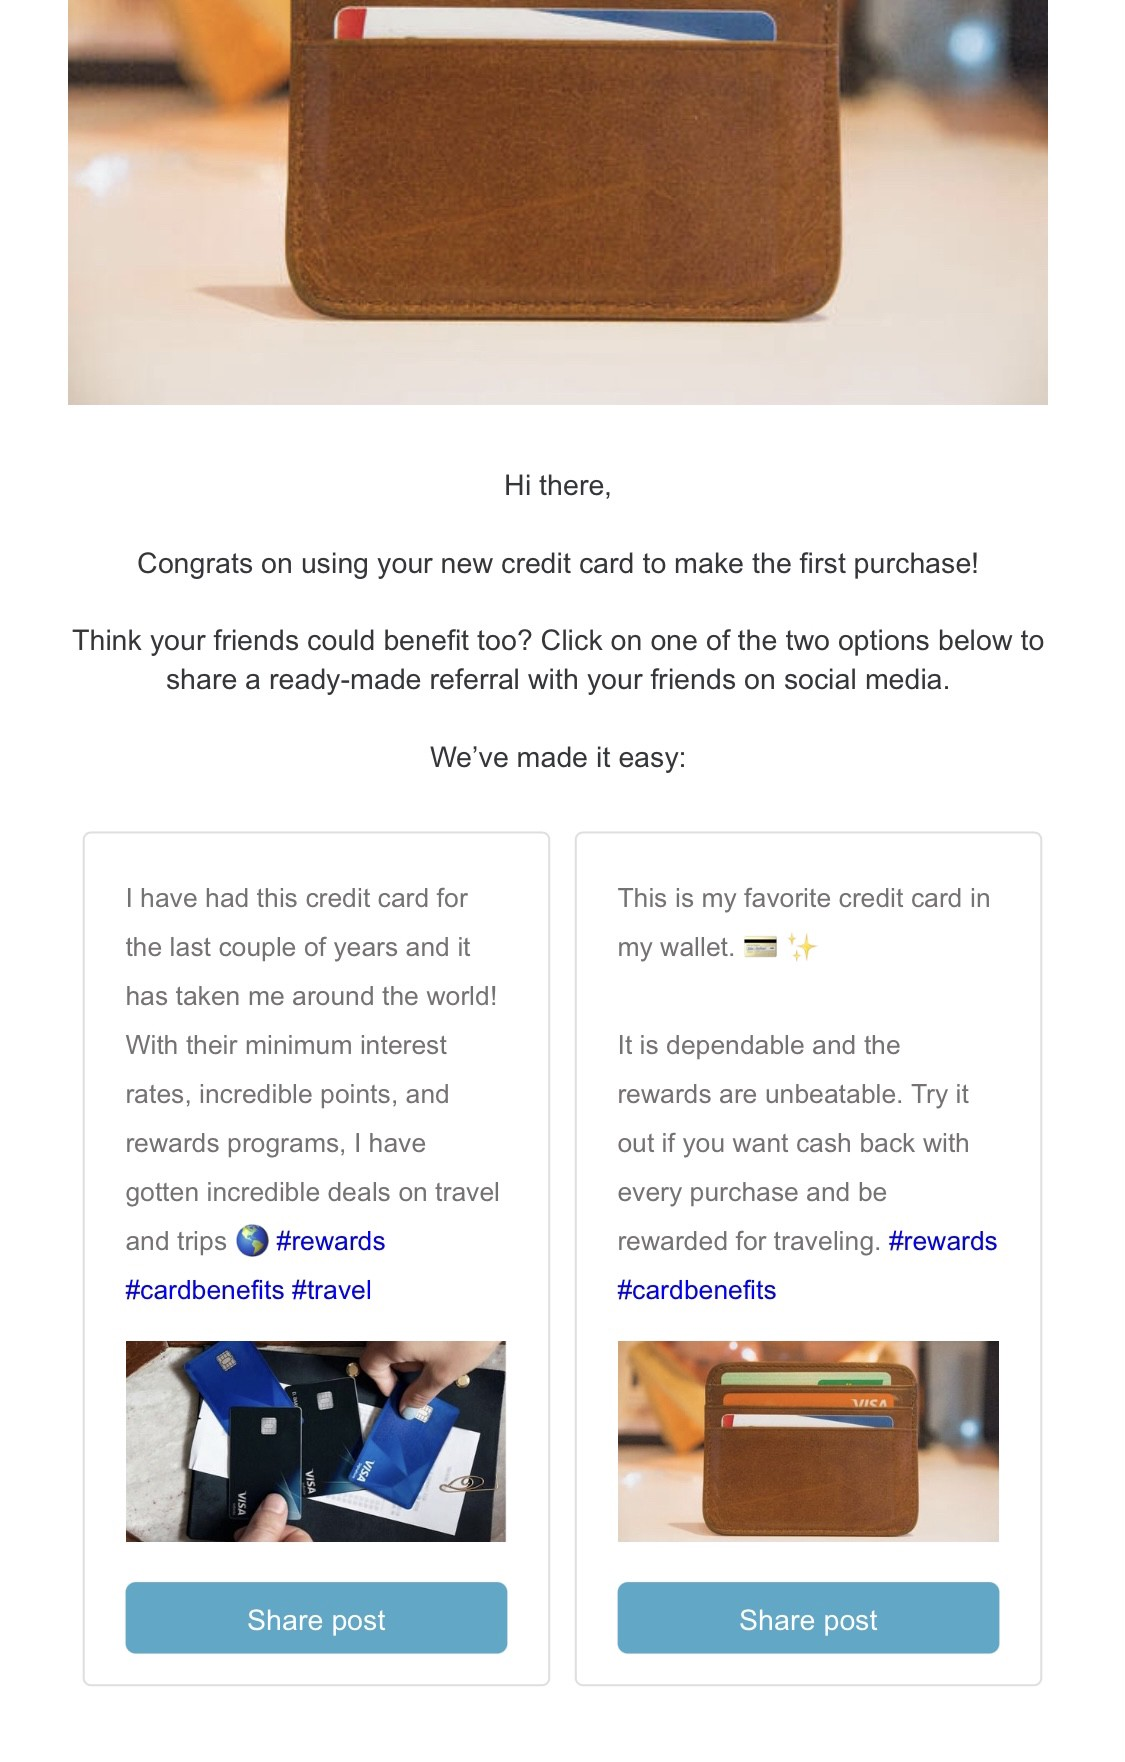 Example of referral email with embedded ready-made posts